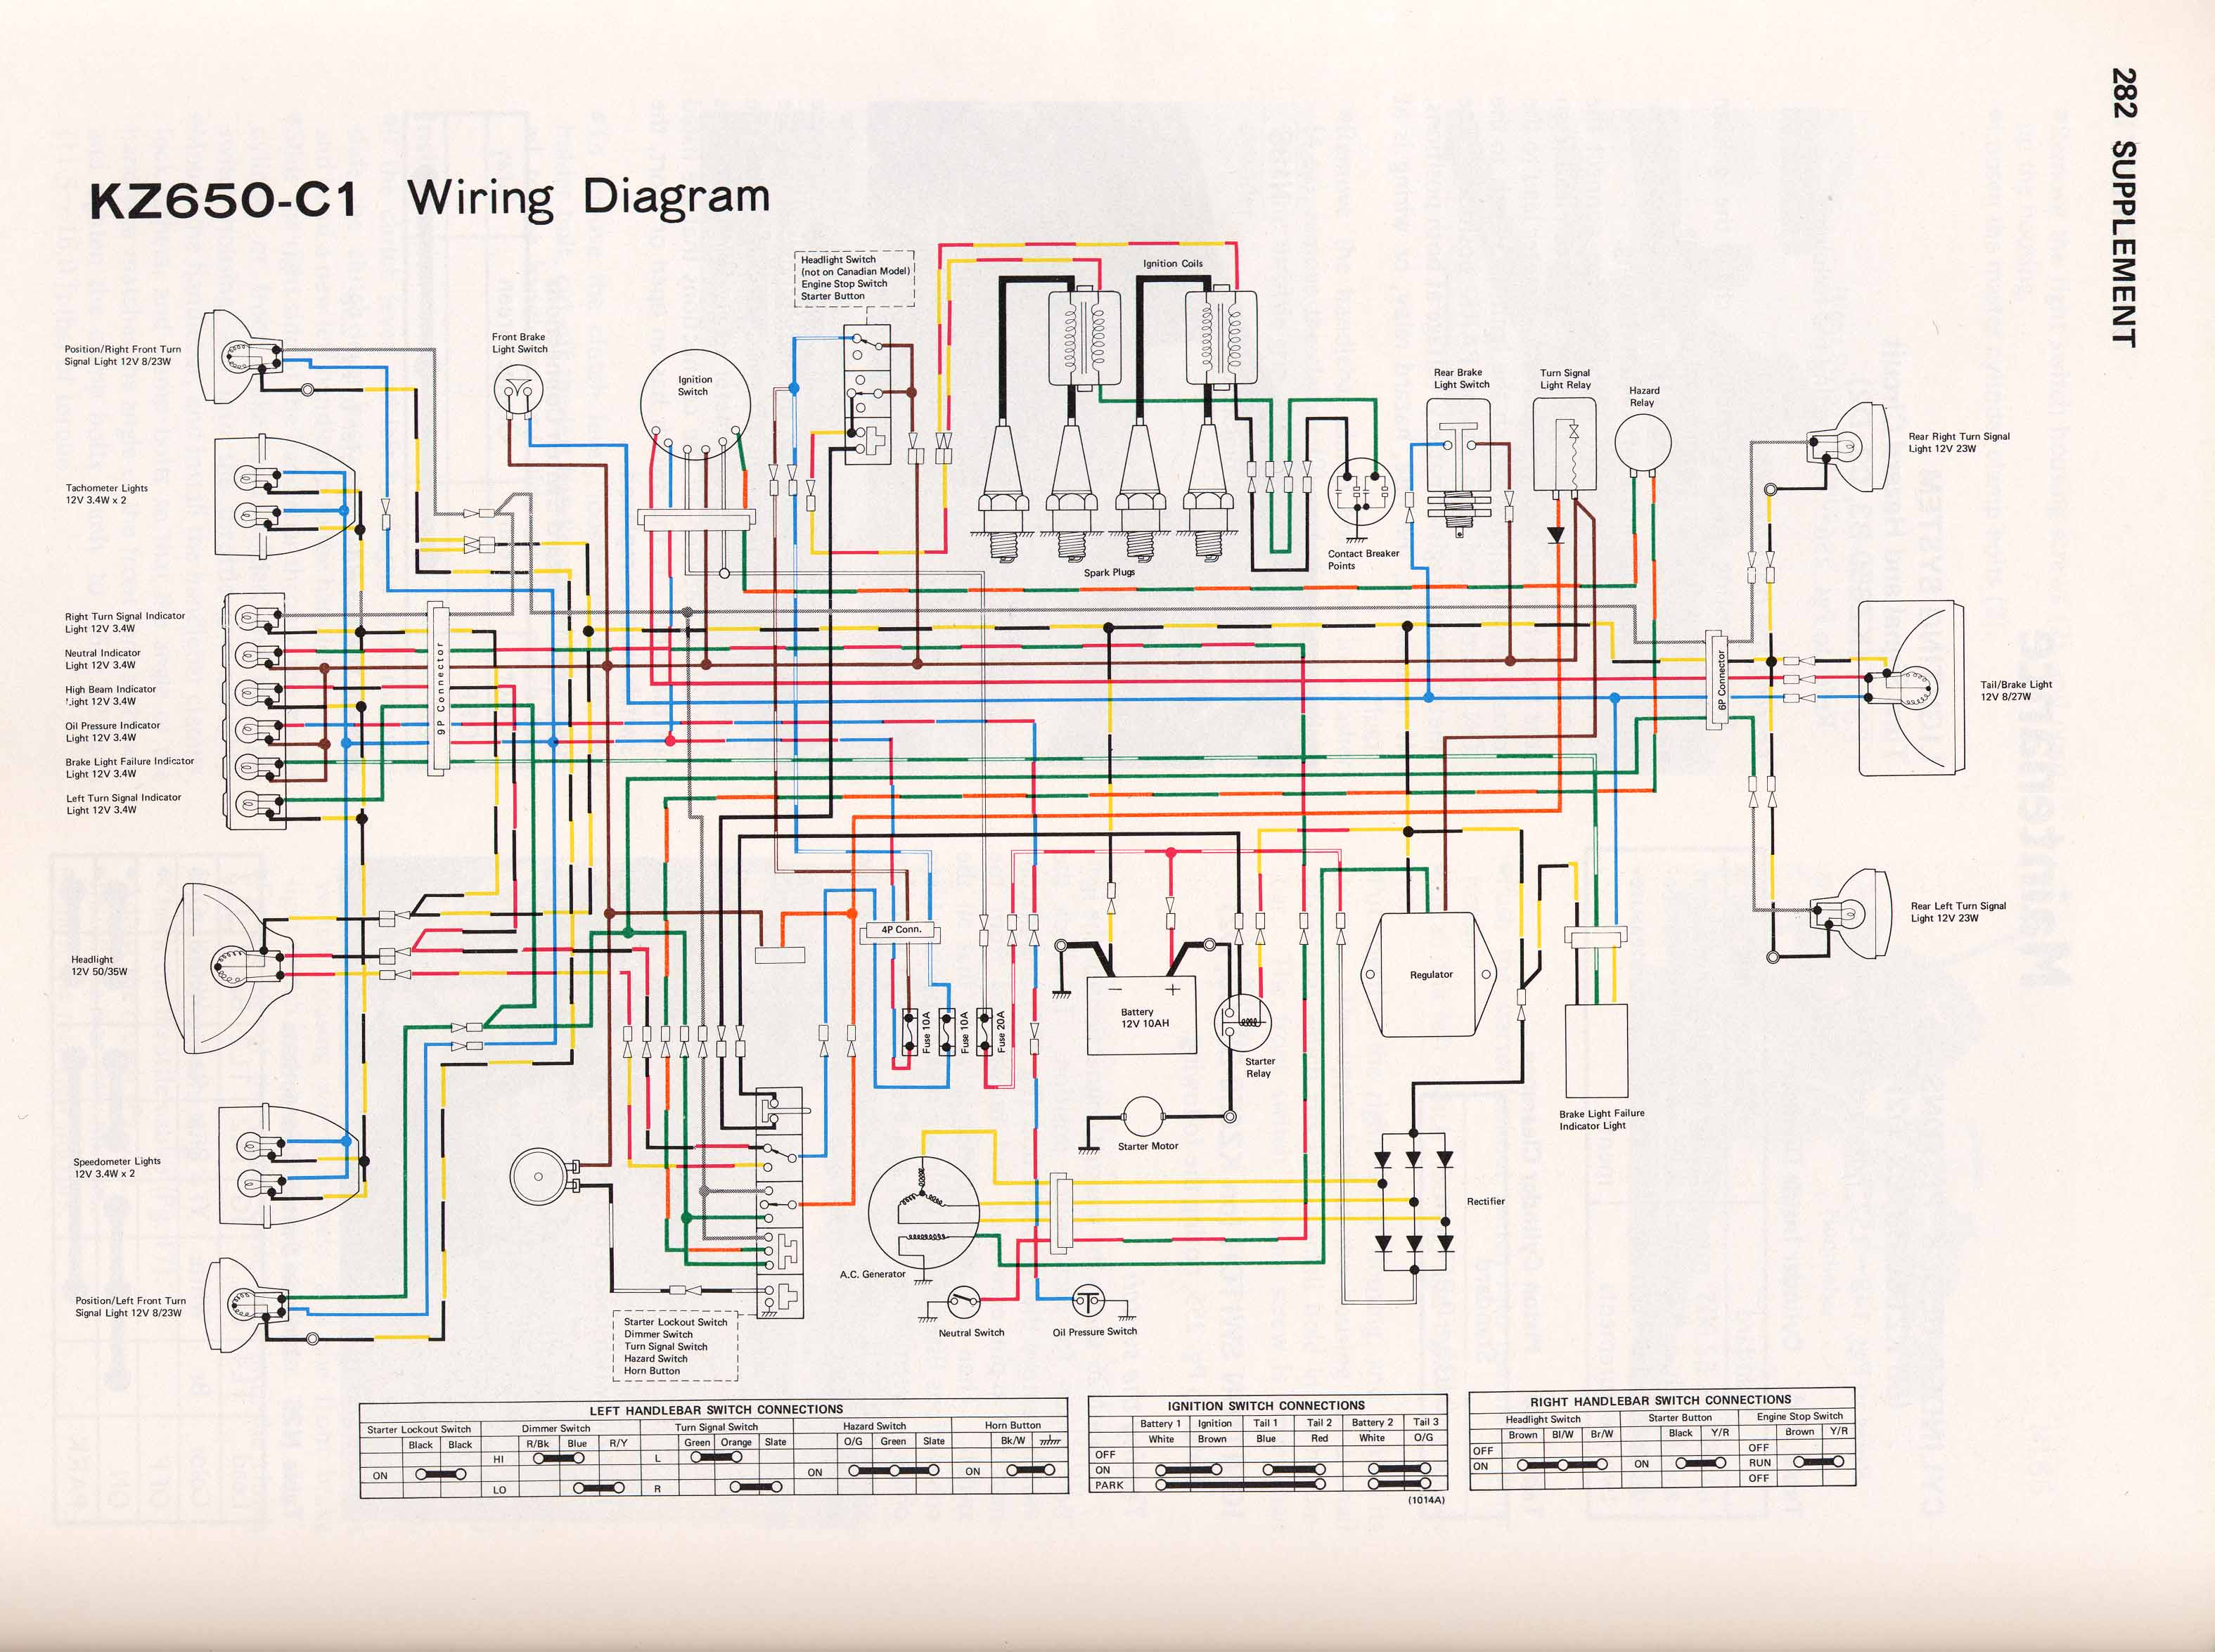 Wiring Diagram Suzuki Rgv 120 Enthusiast Diagrams Capacitor Further Washing Machine Kz650 Info Rh 250 History Rgx